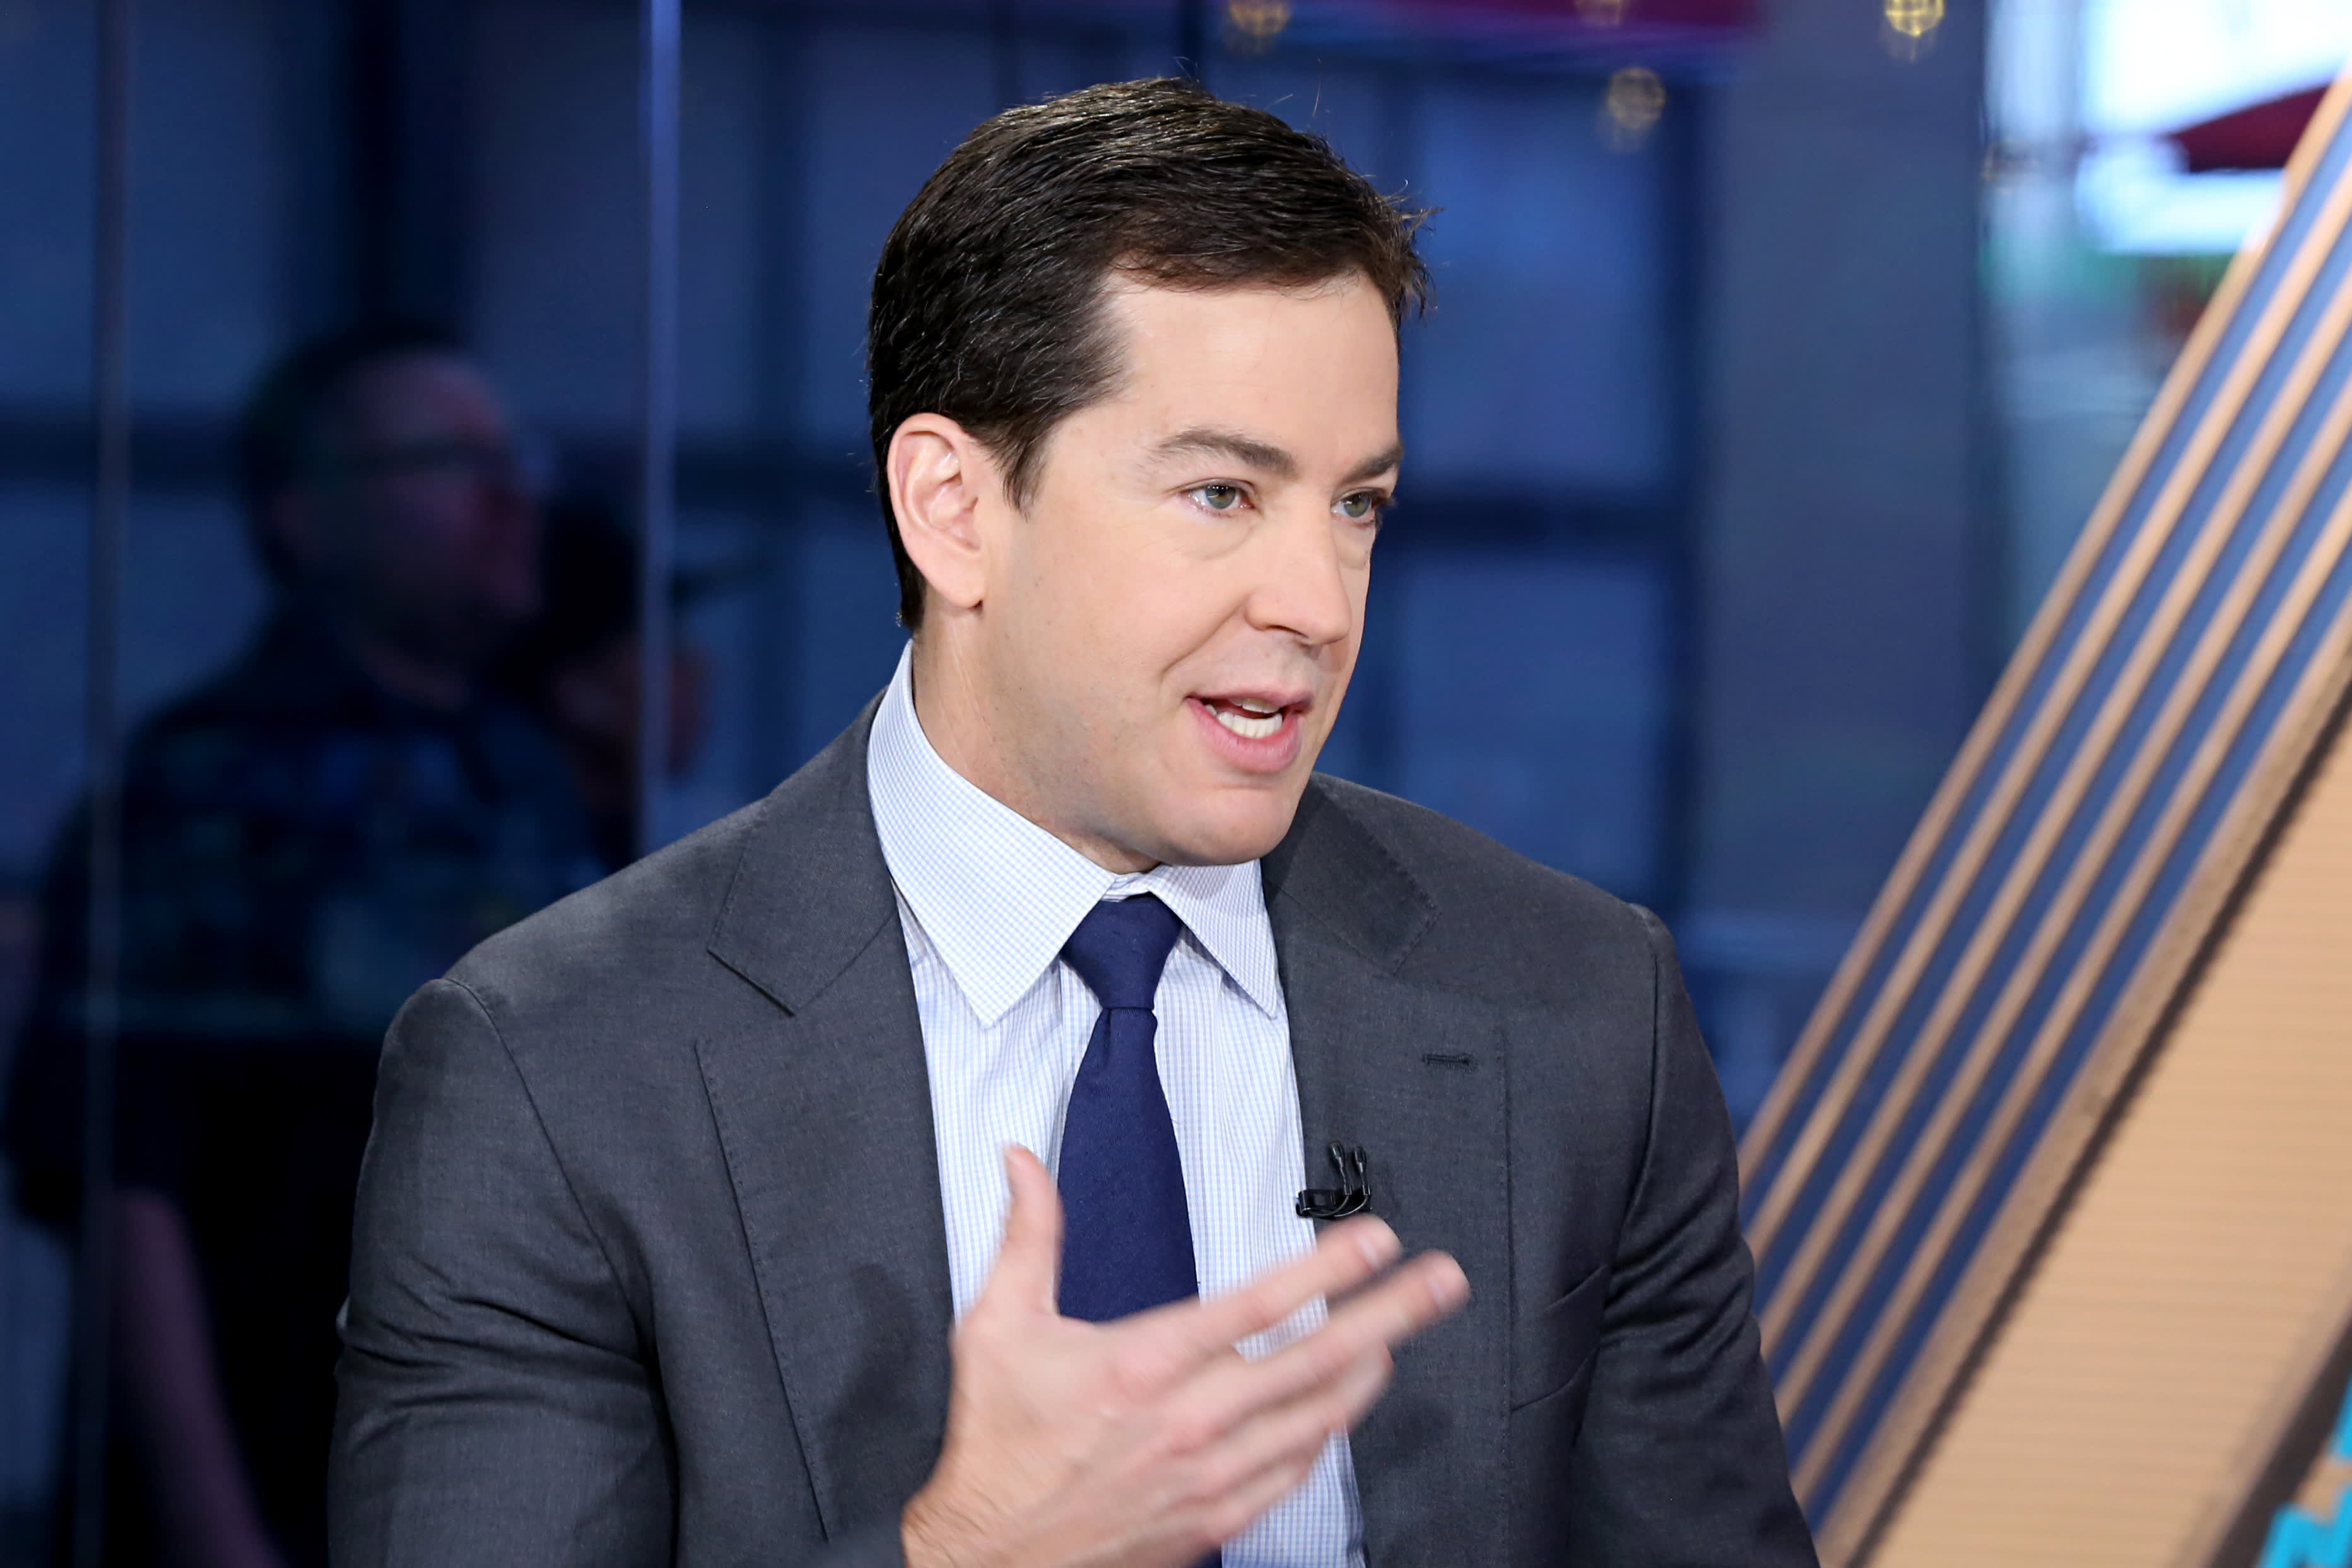 Okta CEO defends $6.5 billion deal for rival Auth0 after shares fall